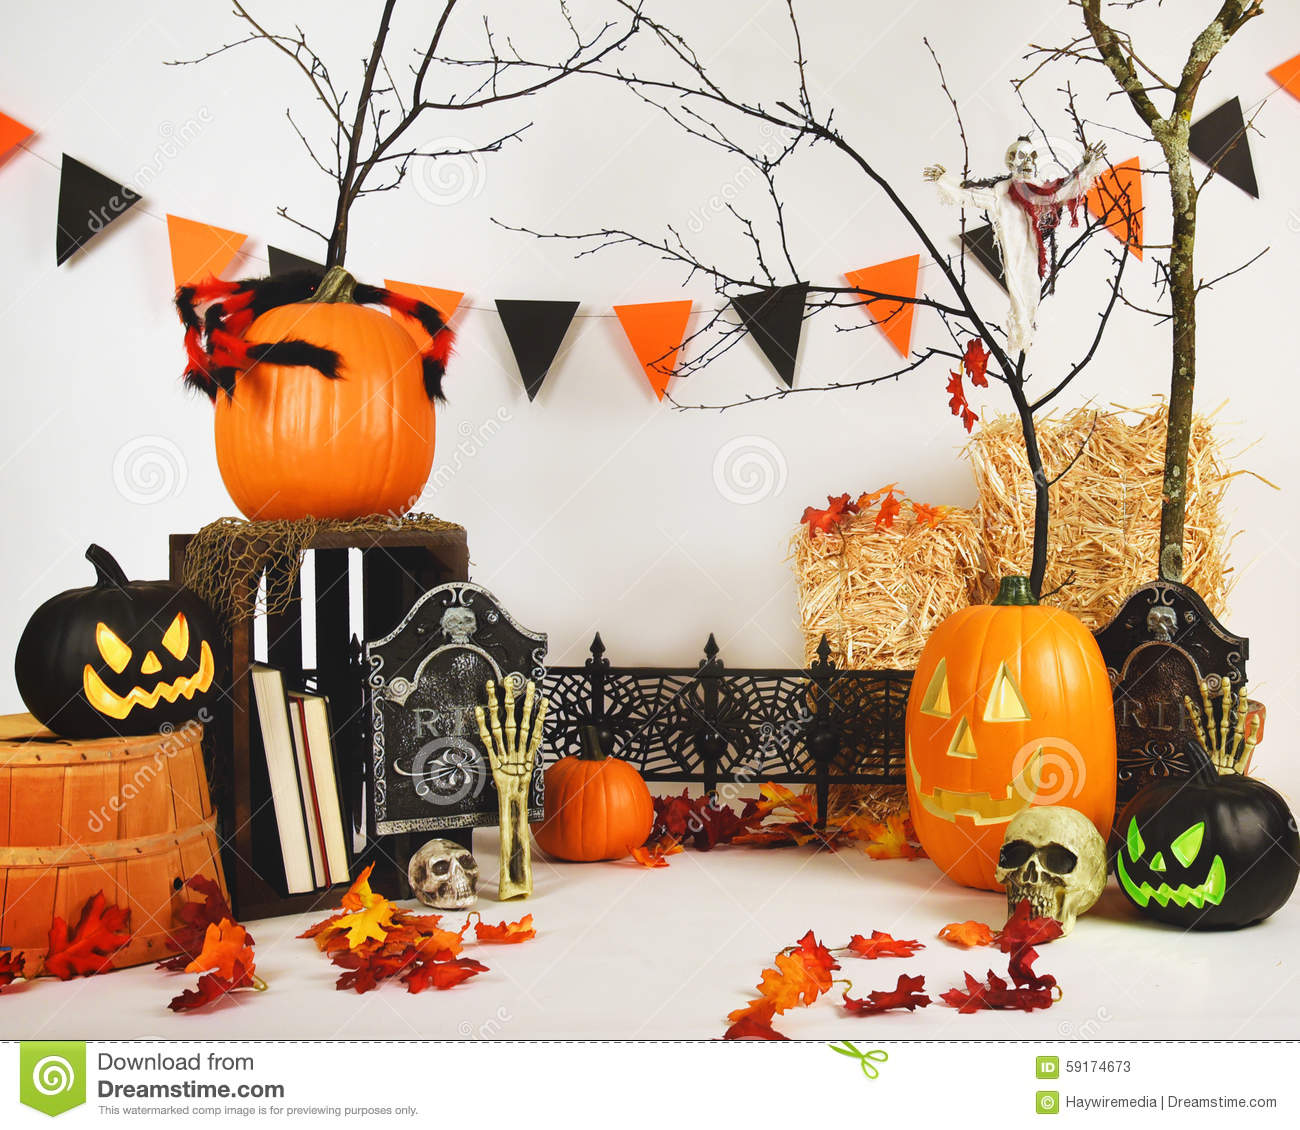 Scary studio halloween background scene on white stock image image 59174673 - Image de halloween ...